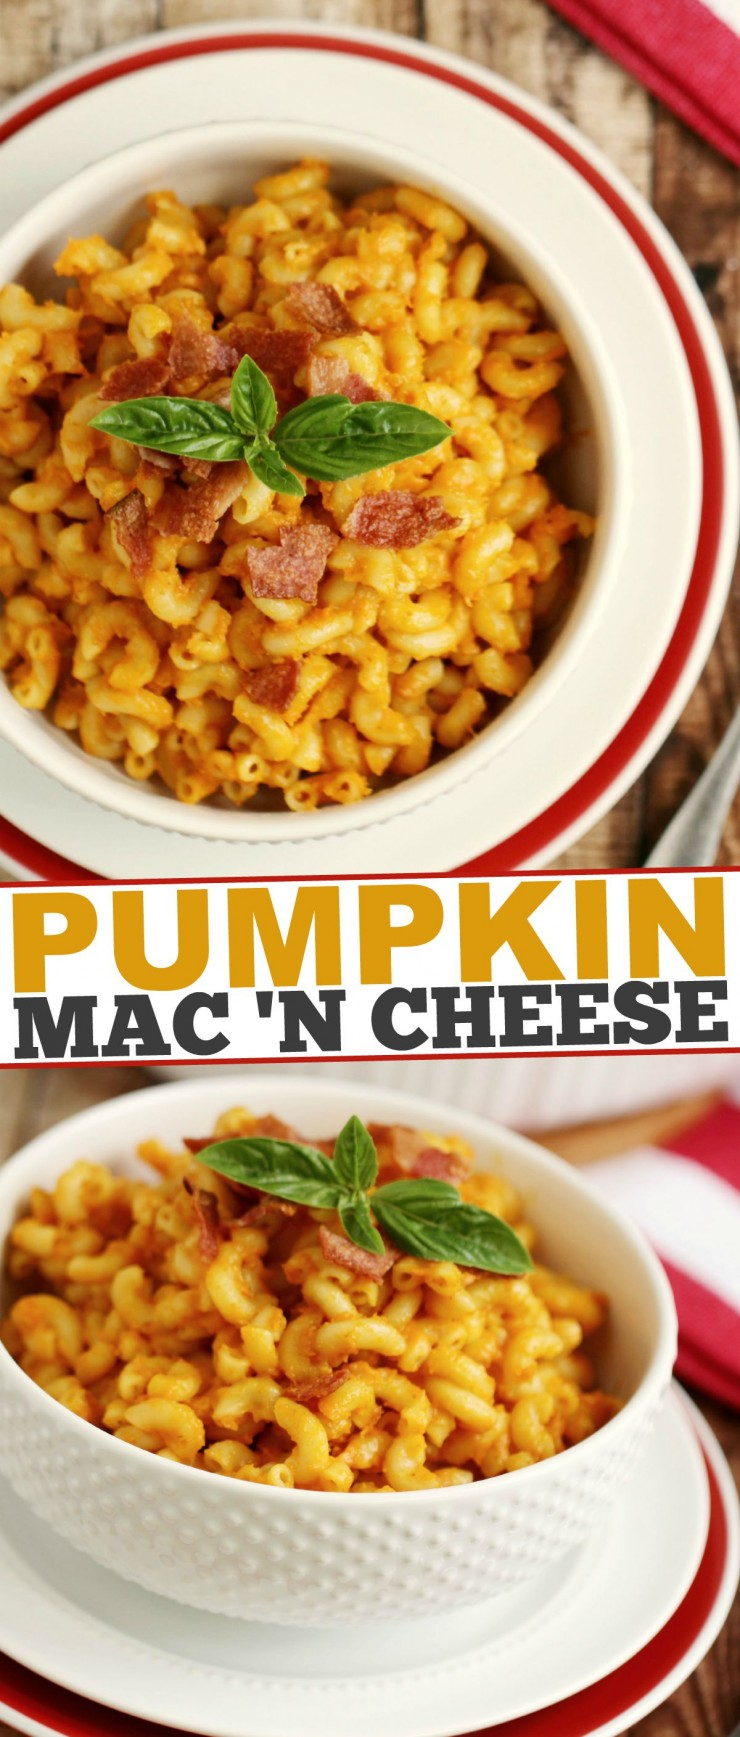 This Pumpkin Mac 'n Cheese is an autumn recipe that is sure to be your new favourite comfort food.